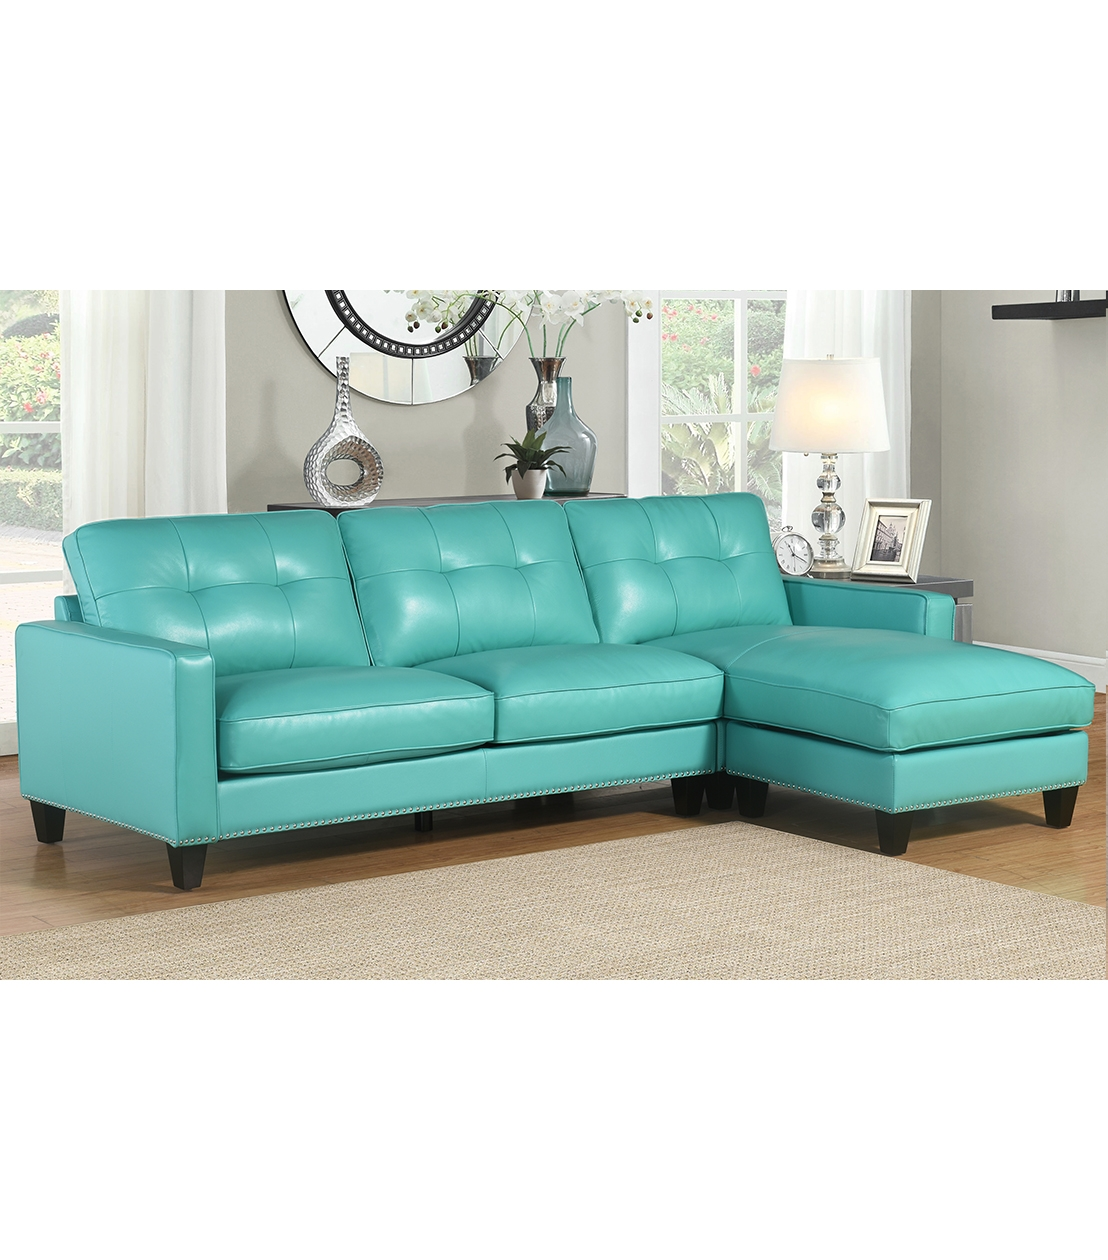 Sectionals Metropolitan Leather Sectional Intended For Abbyson Sectional Sofa (View 2 of 15)